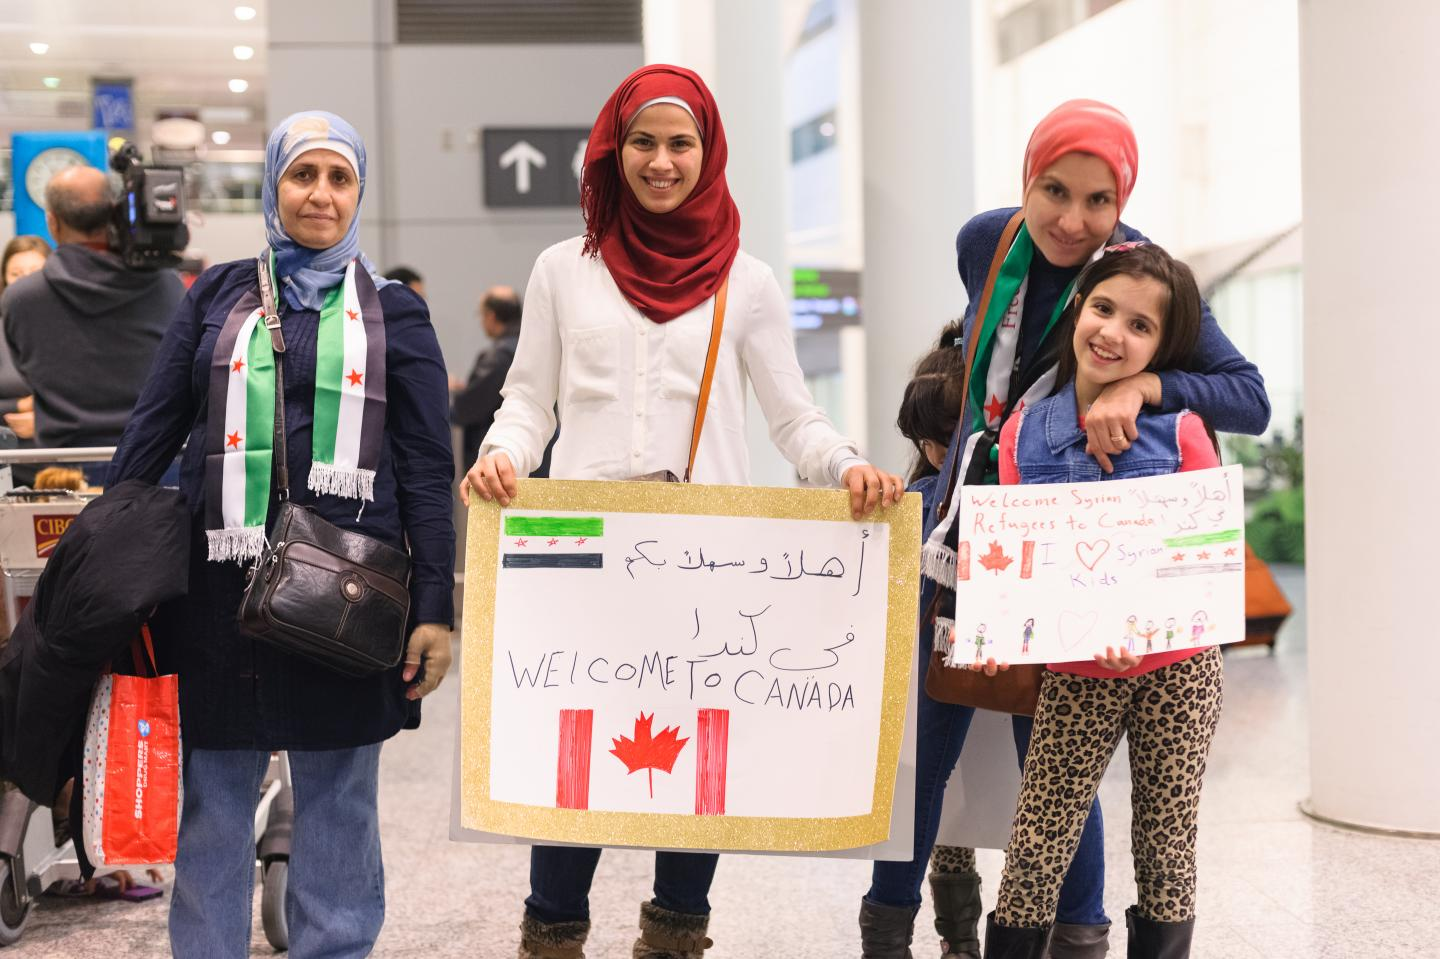 Welcoming Refugees to Canada